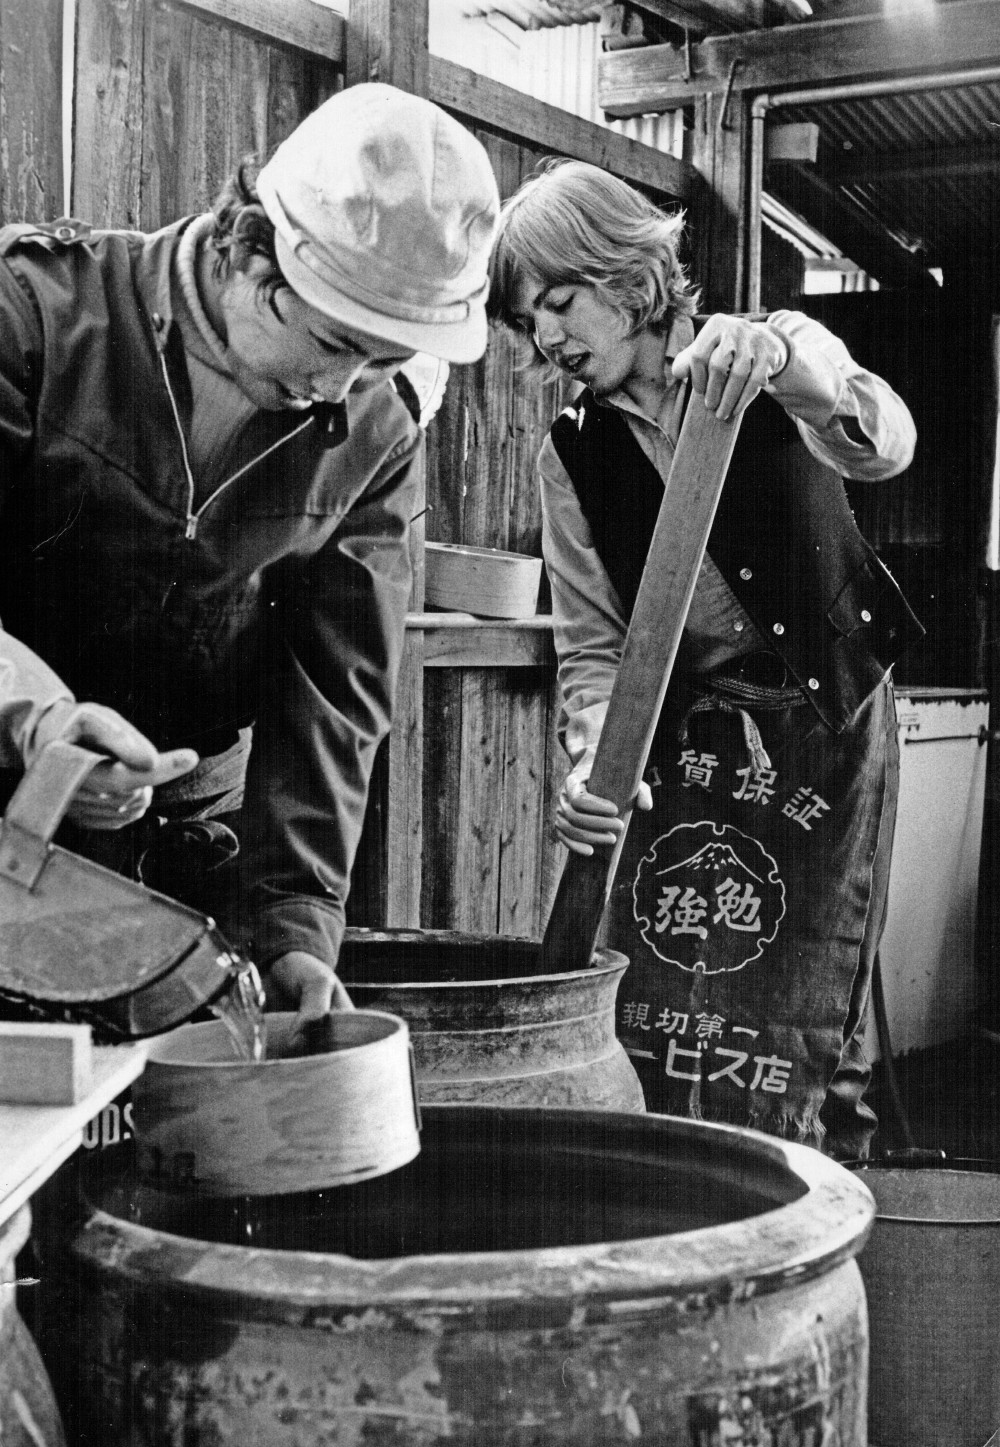 1971 preparing clay, Karatsu